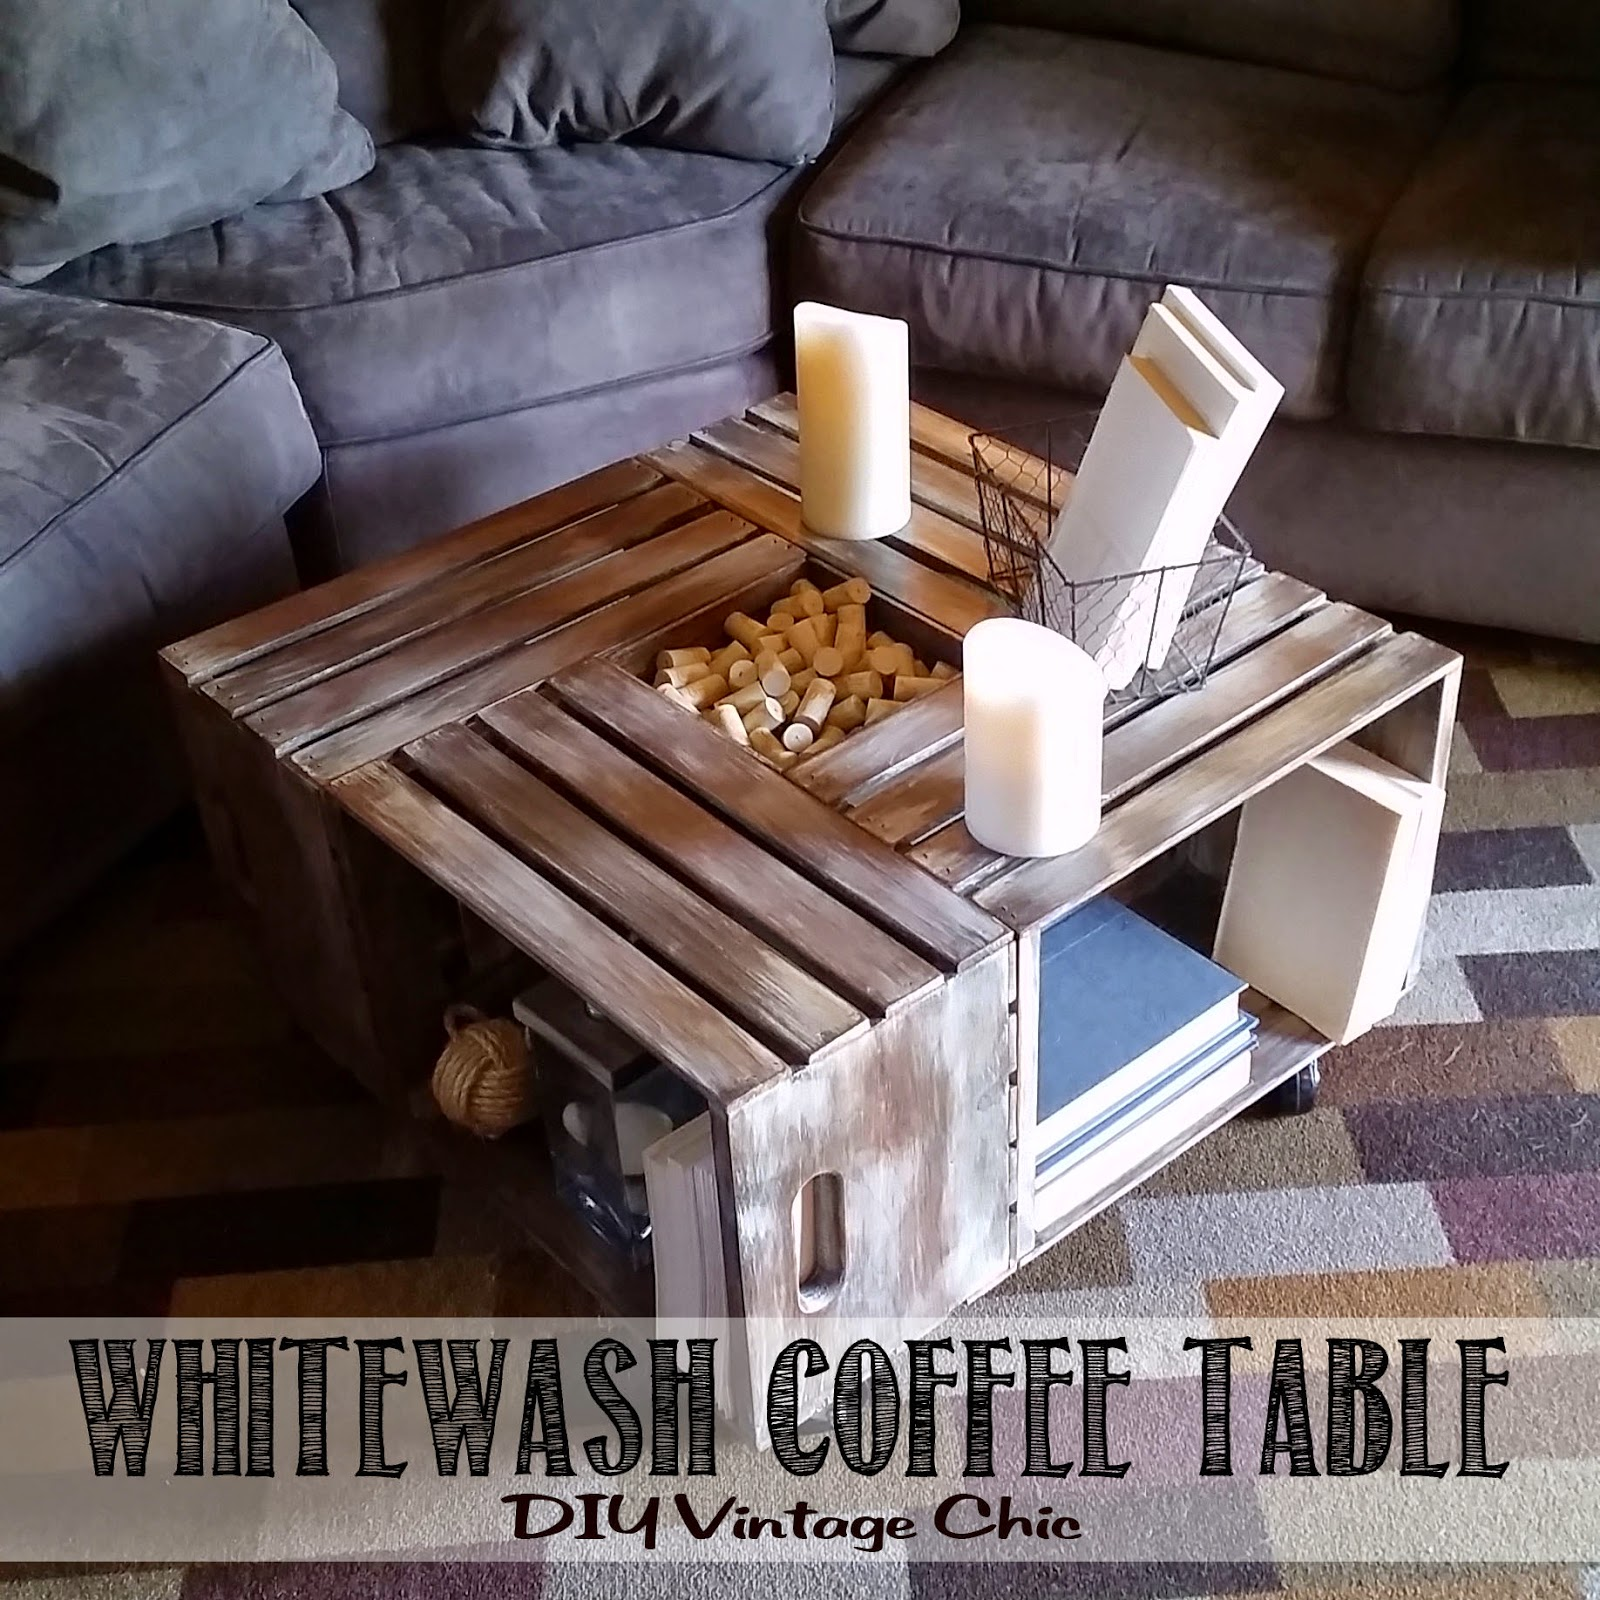 DIY Vintage Chic DIY Vintage Wine Crate Coffee Table Whitewash